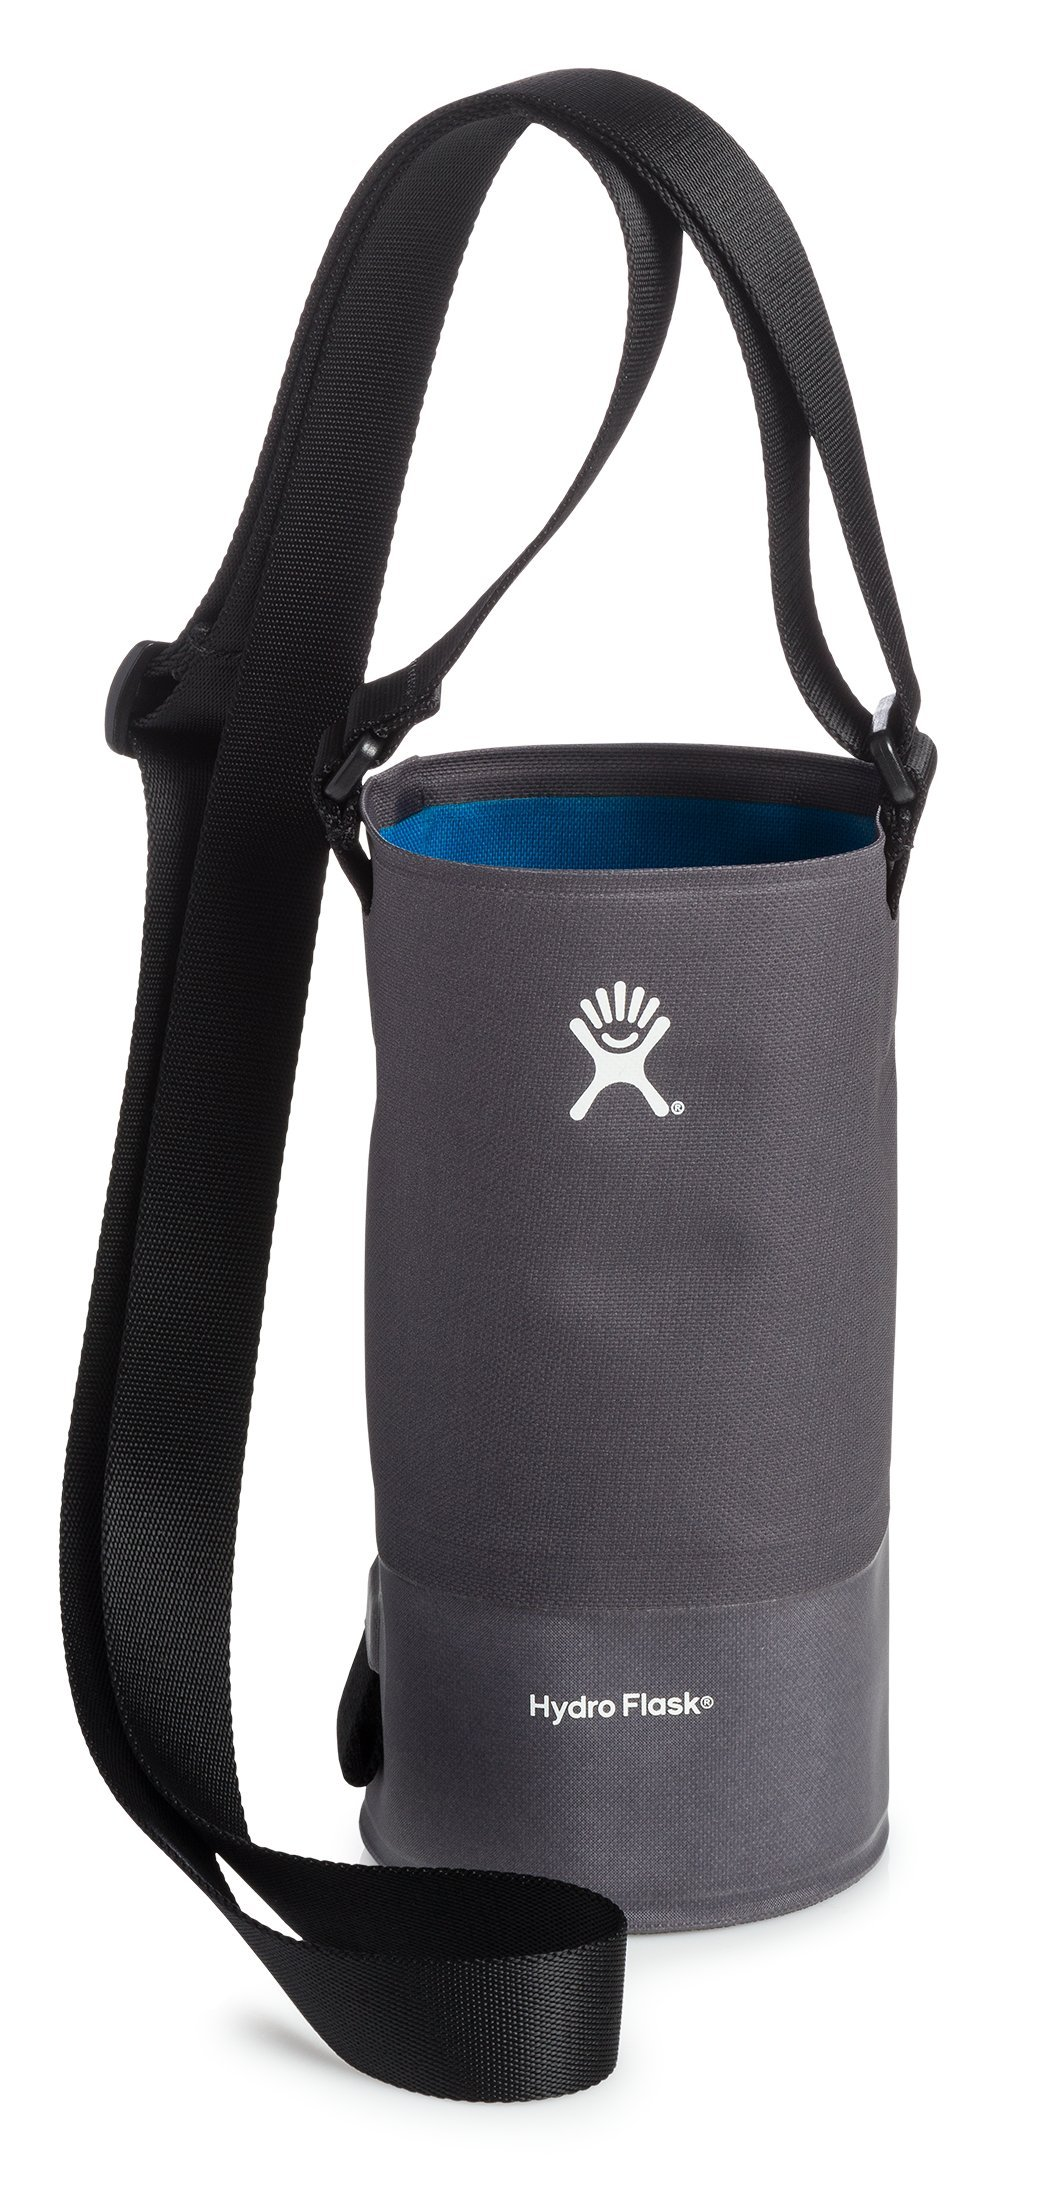 Hydro Flask Large Soft Sided Nylon Tag Along Water Bottle Sling with Pockets, Black (Fits 32 oz and 40 oz Bottles)